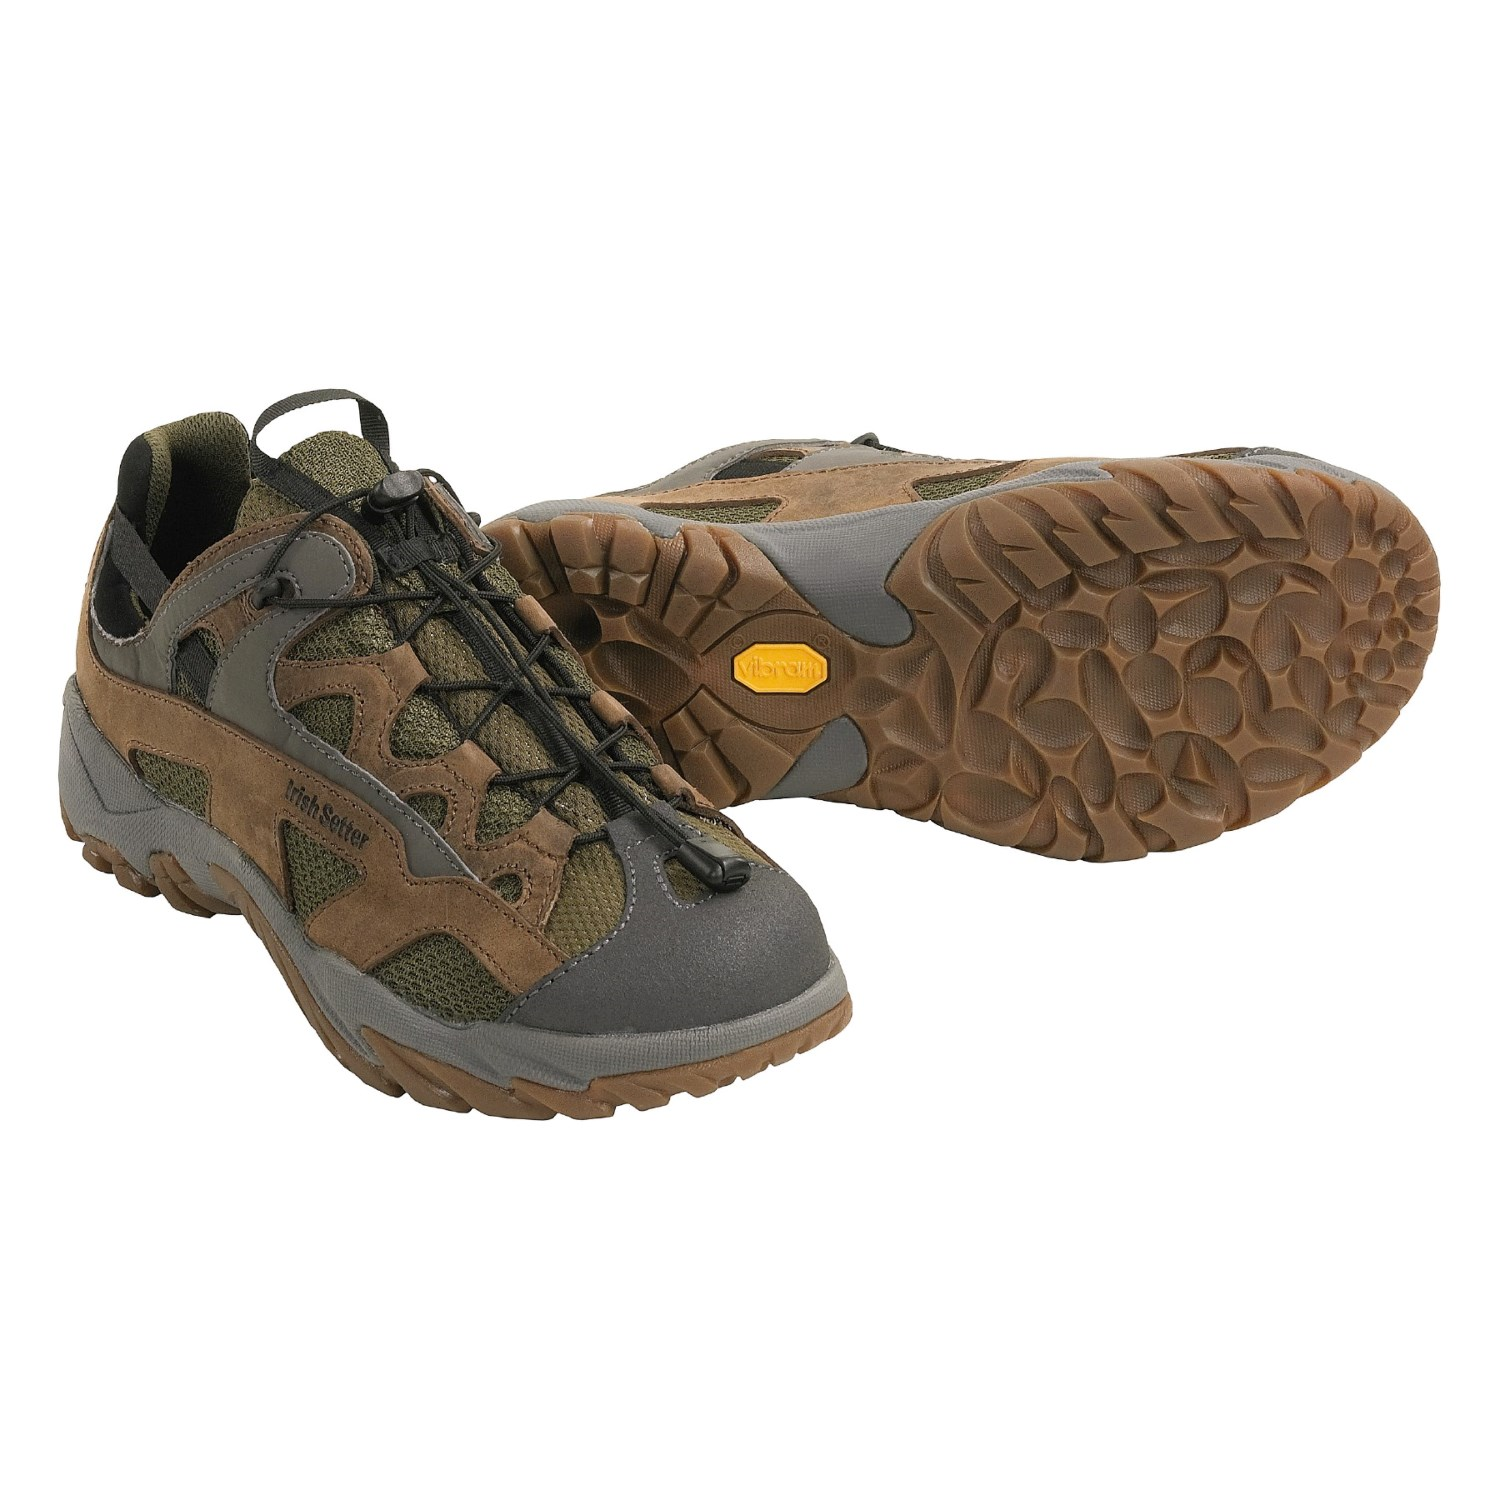 Irish Setter Wavecrest Wx Fishing Shoes For Men 1777v